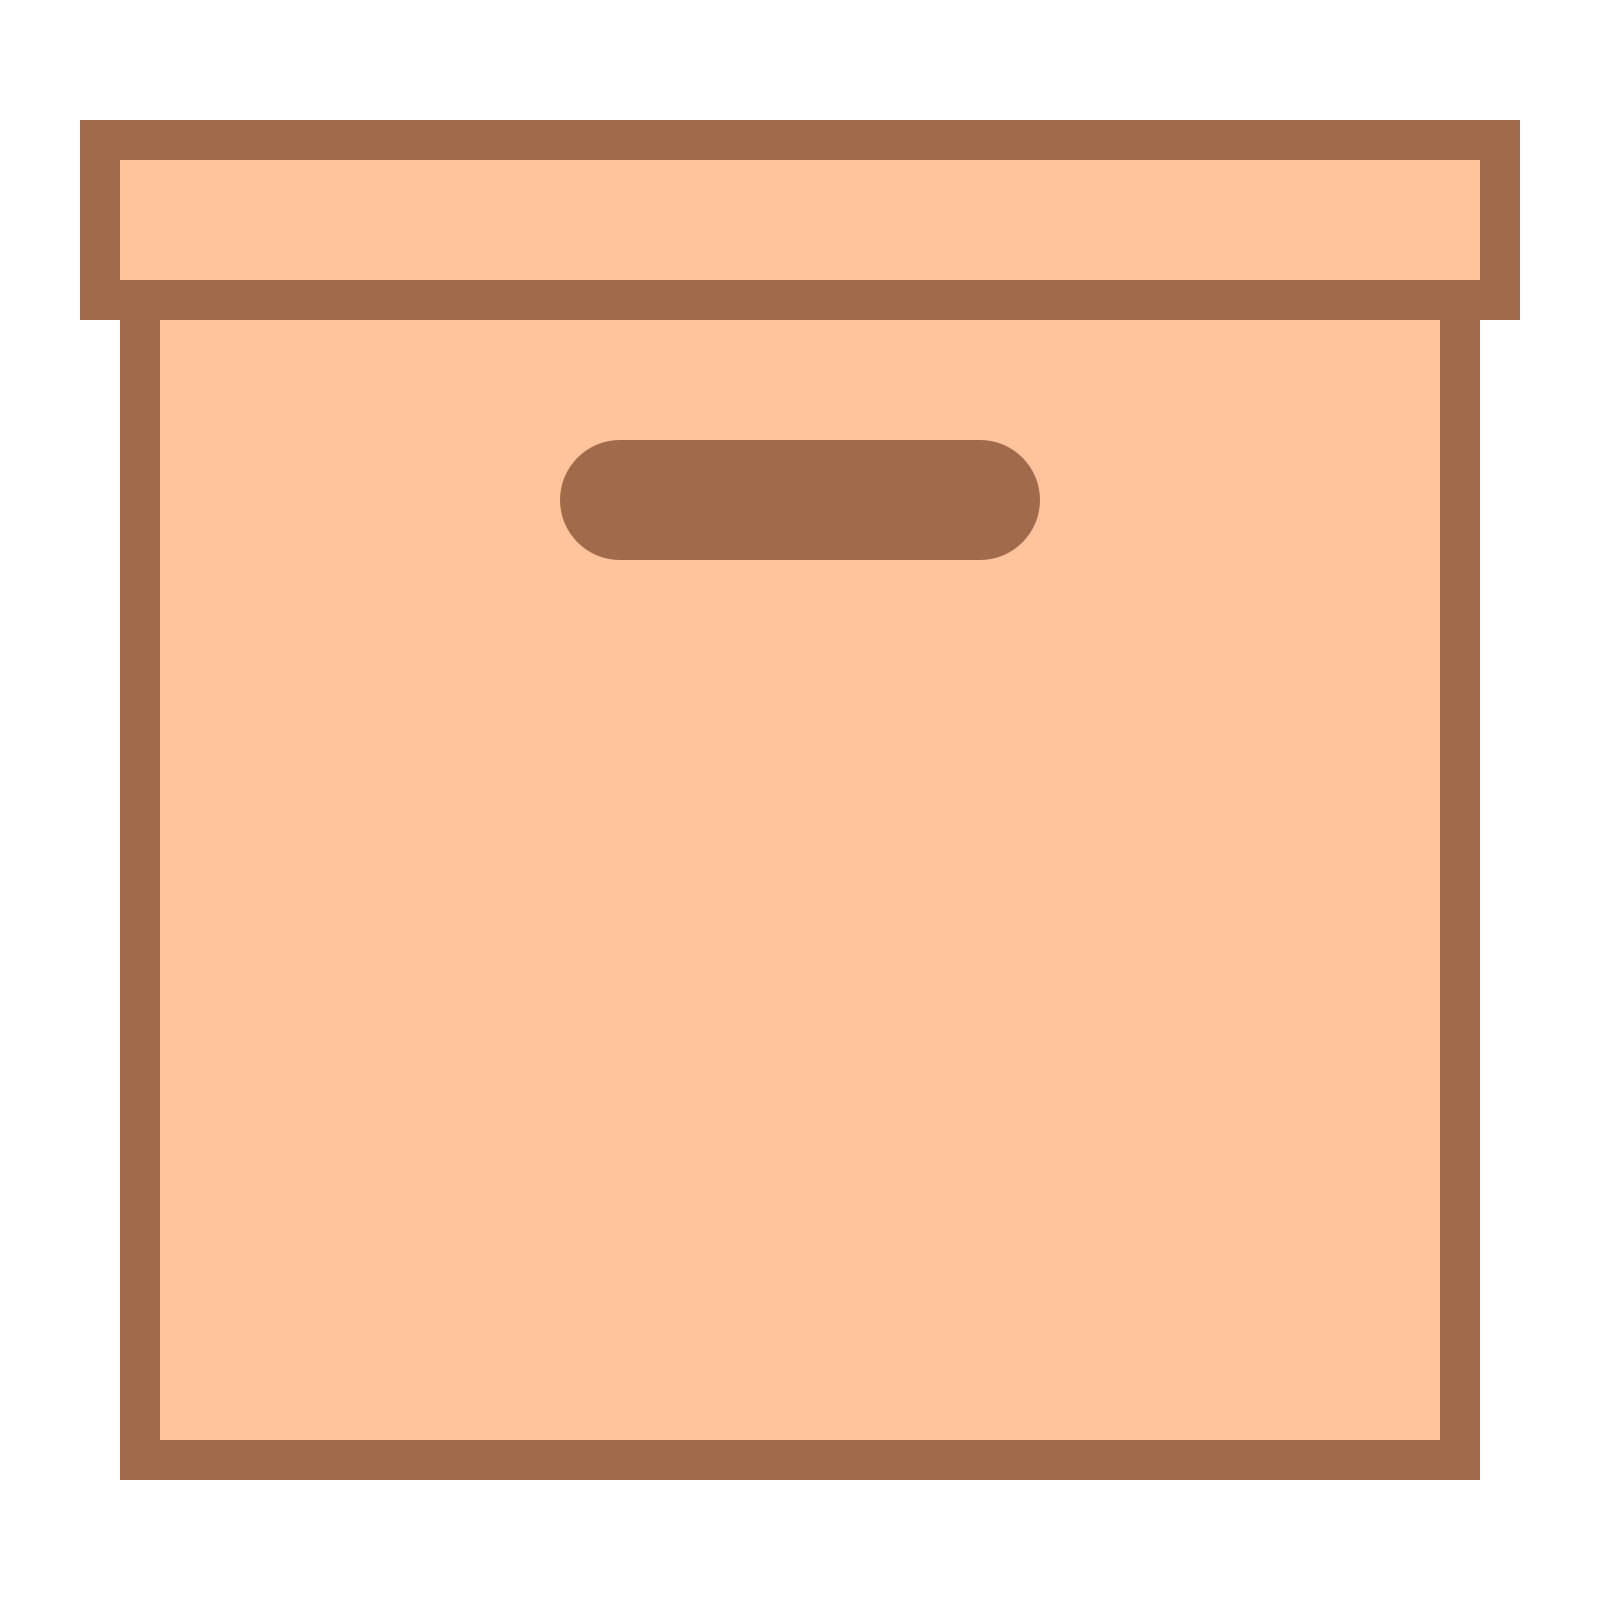 Png images free download. Clipart box rectangular box